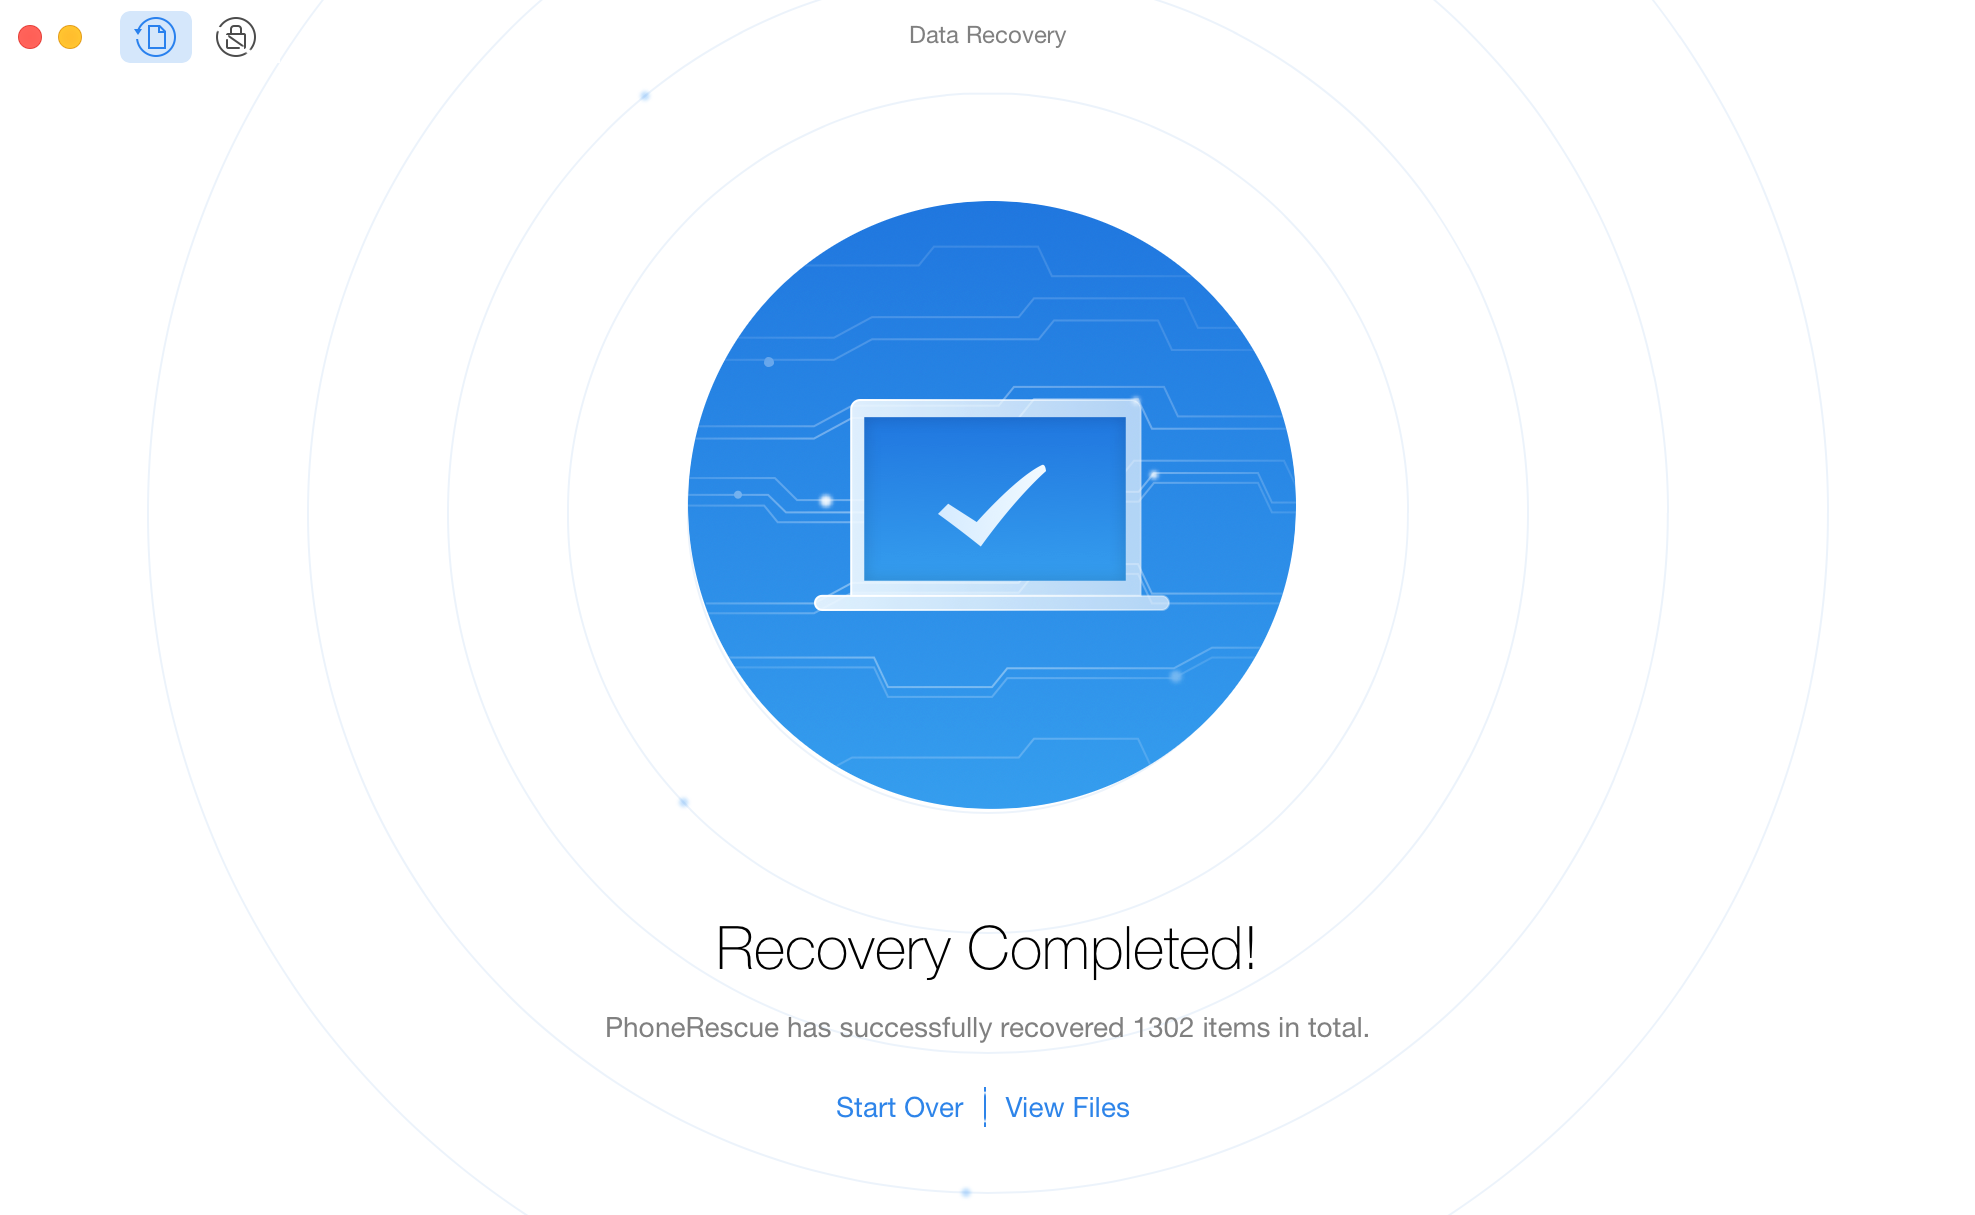 Recovery Process Page